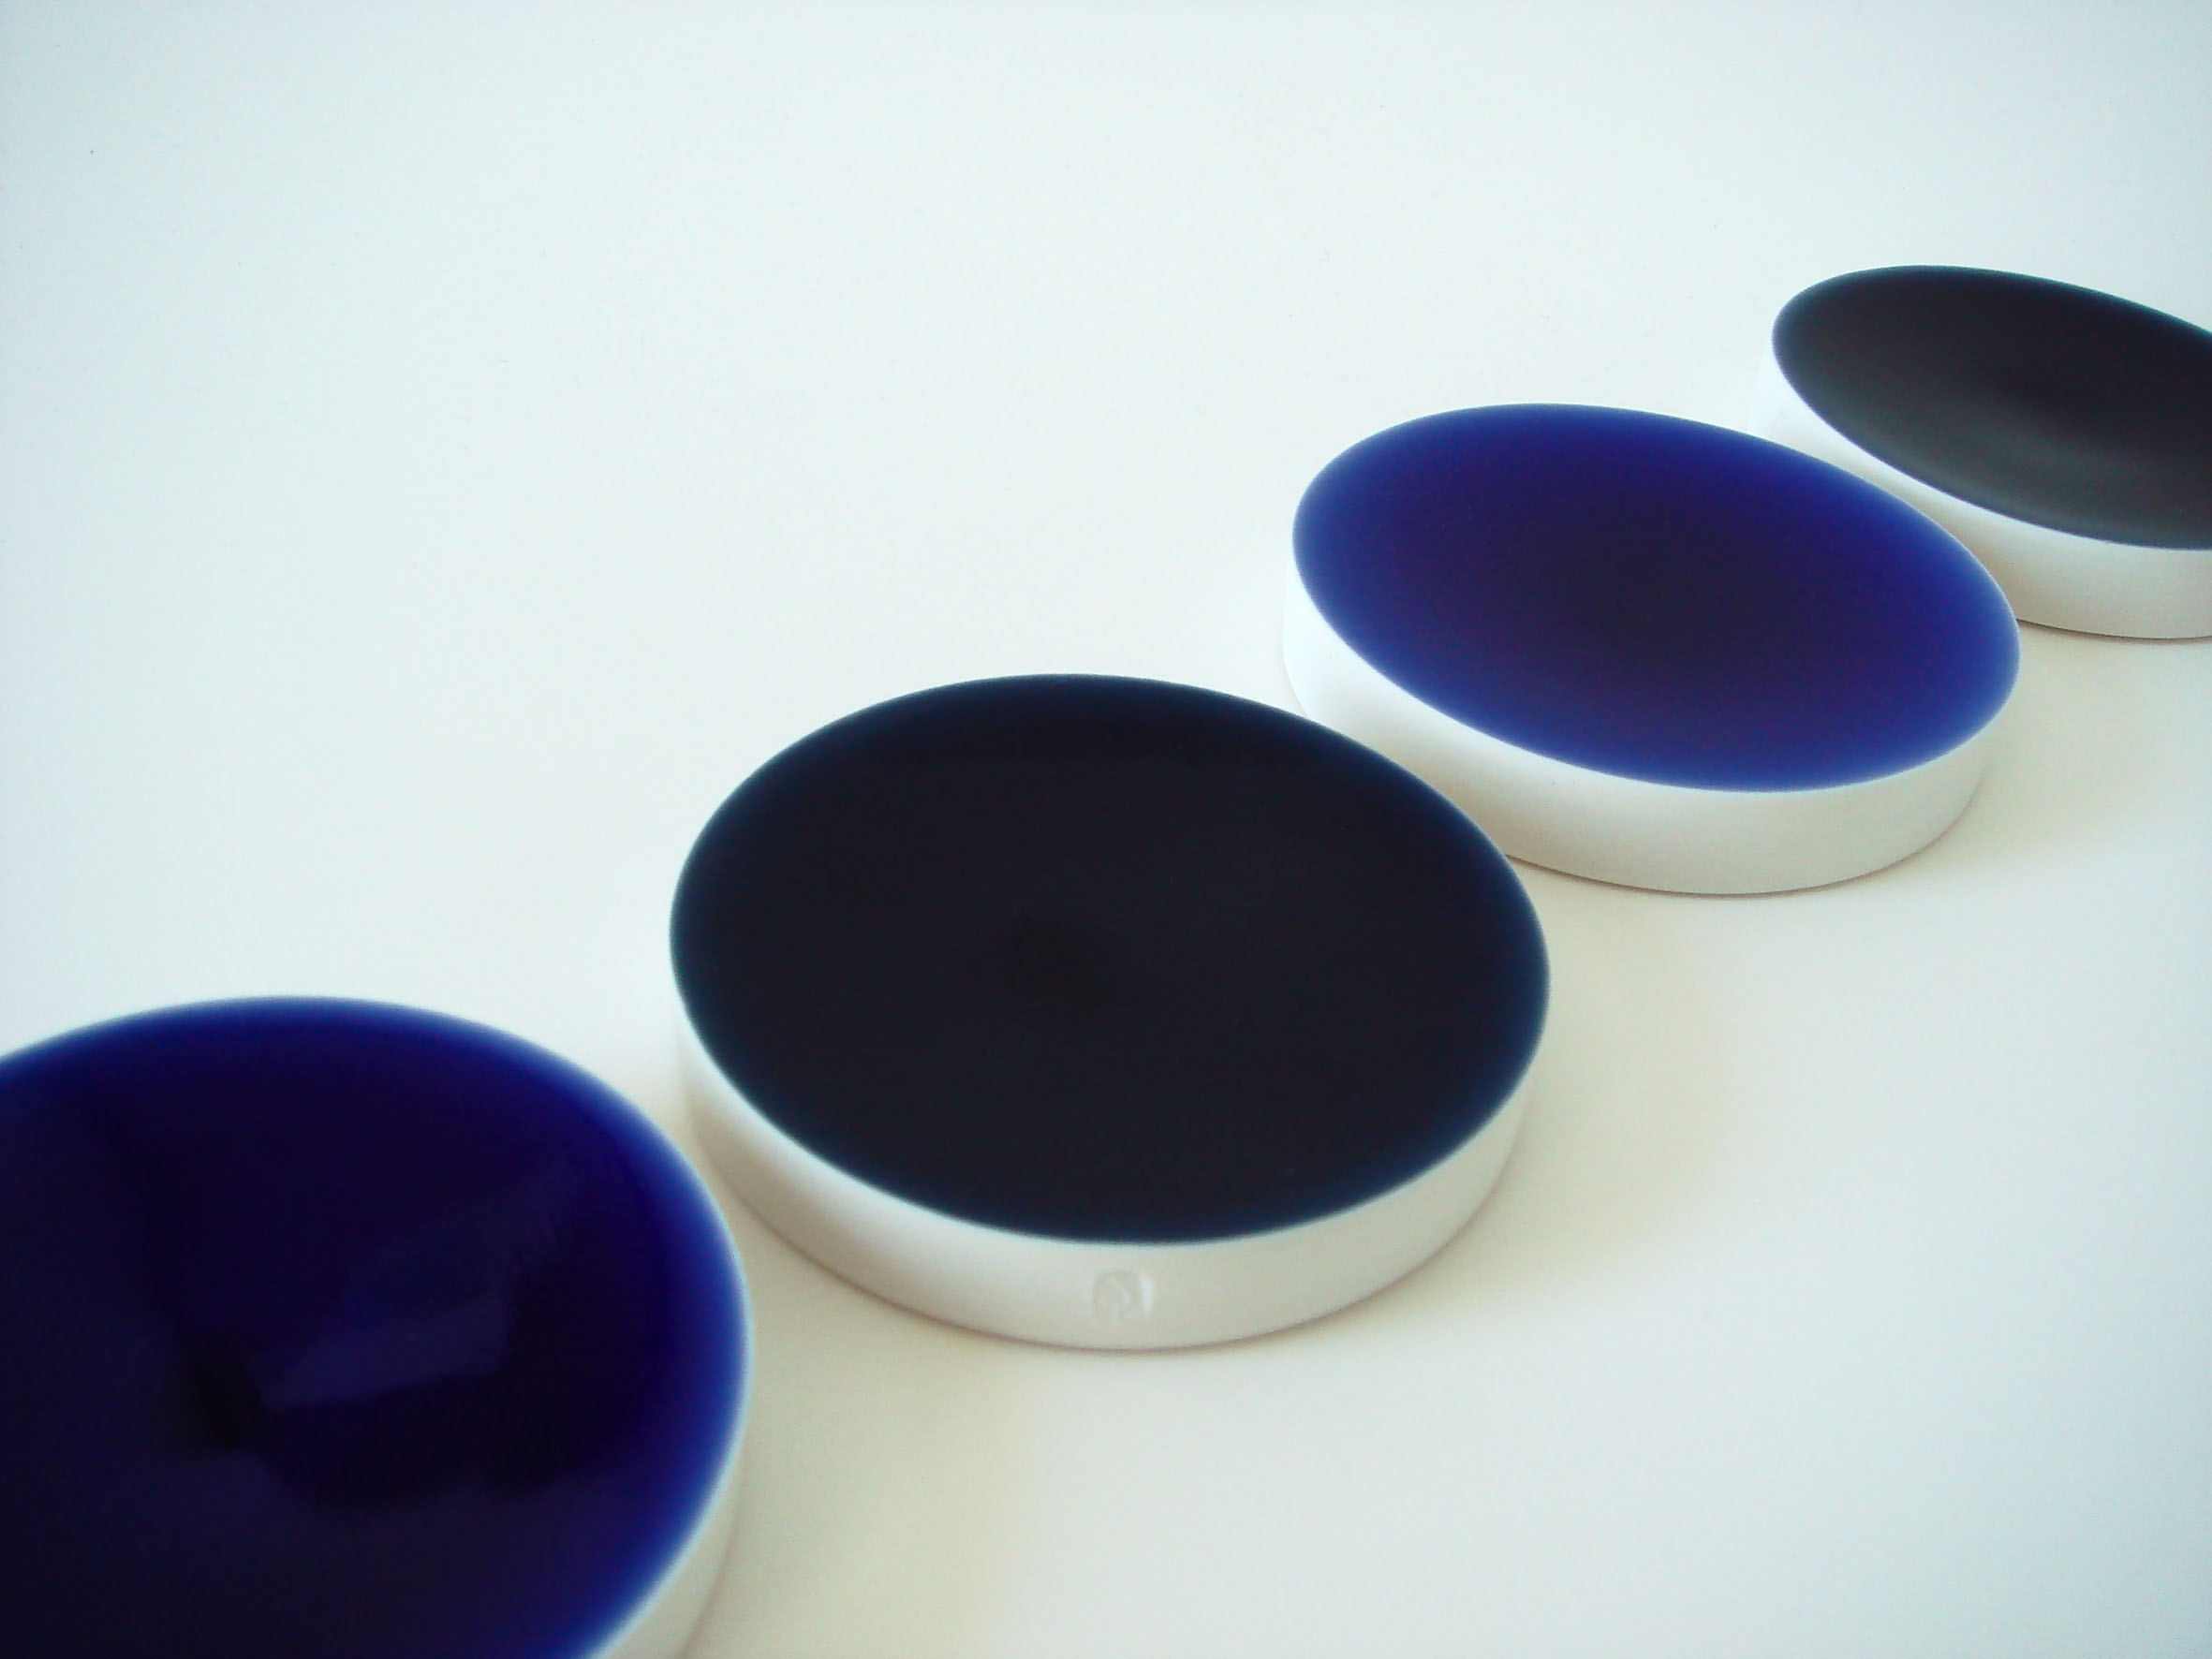 Yozora / 2009  Material / Thrown-porcelain with blue glaze  Exhibited at Bath School of Art and Design, New Designers (London) and British Ceramic Biennale 'Fresh' (Stoke-on-Trent), 2009.